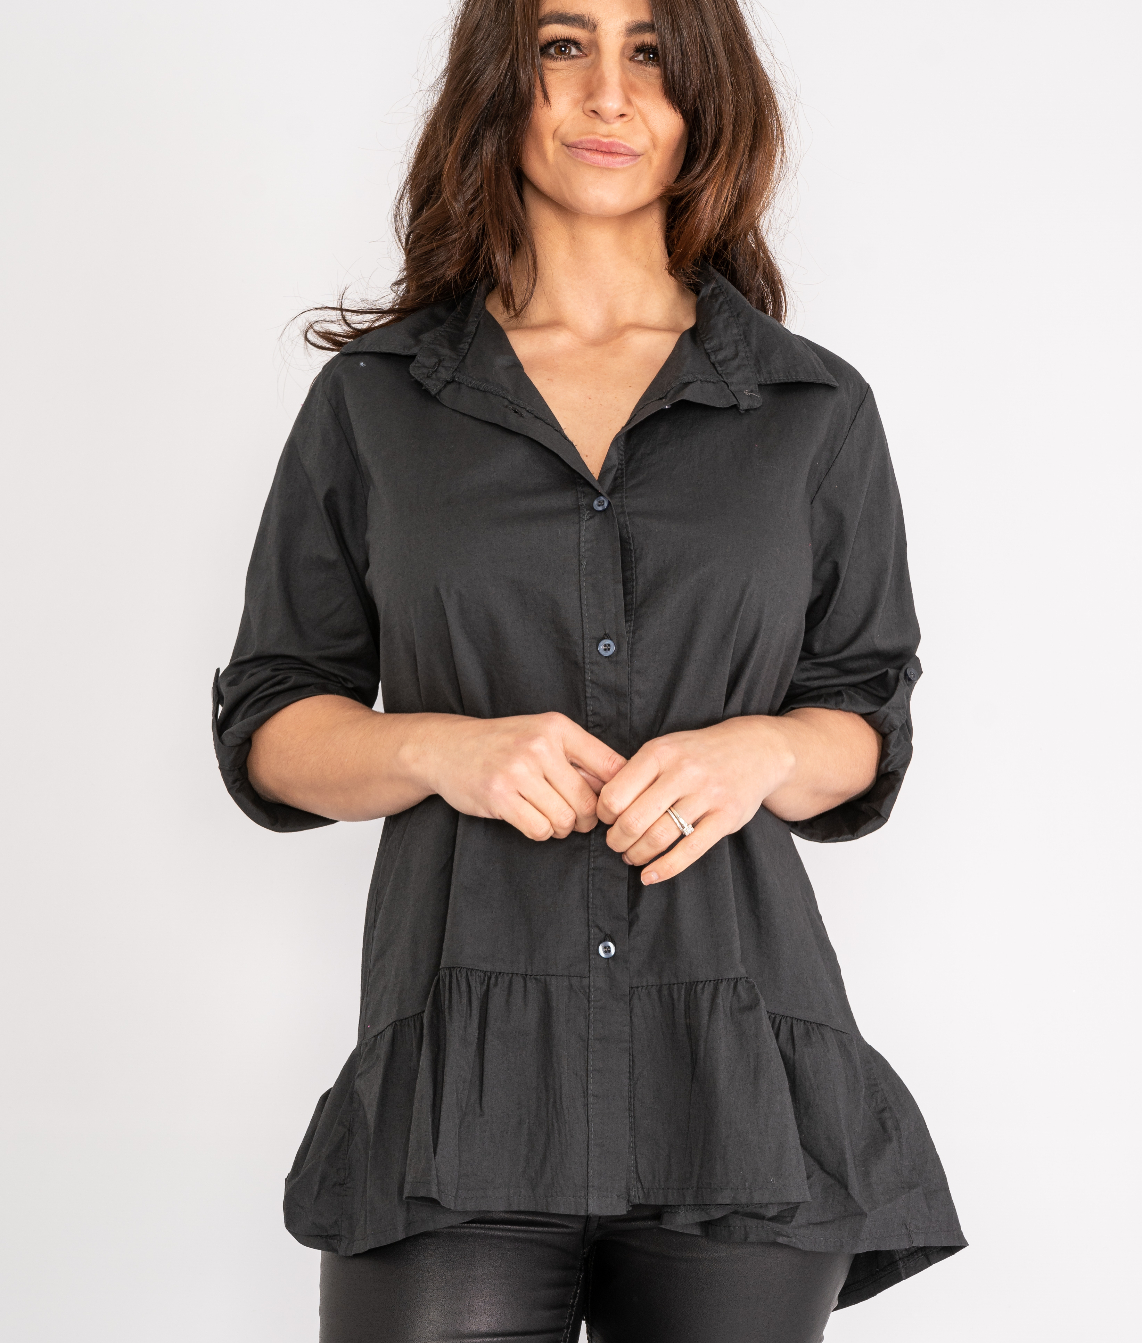 Ruffle button up shirt Lucy Sparks